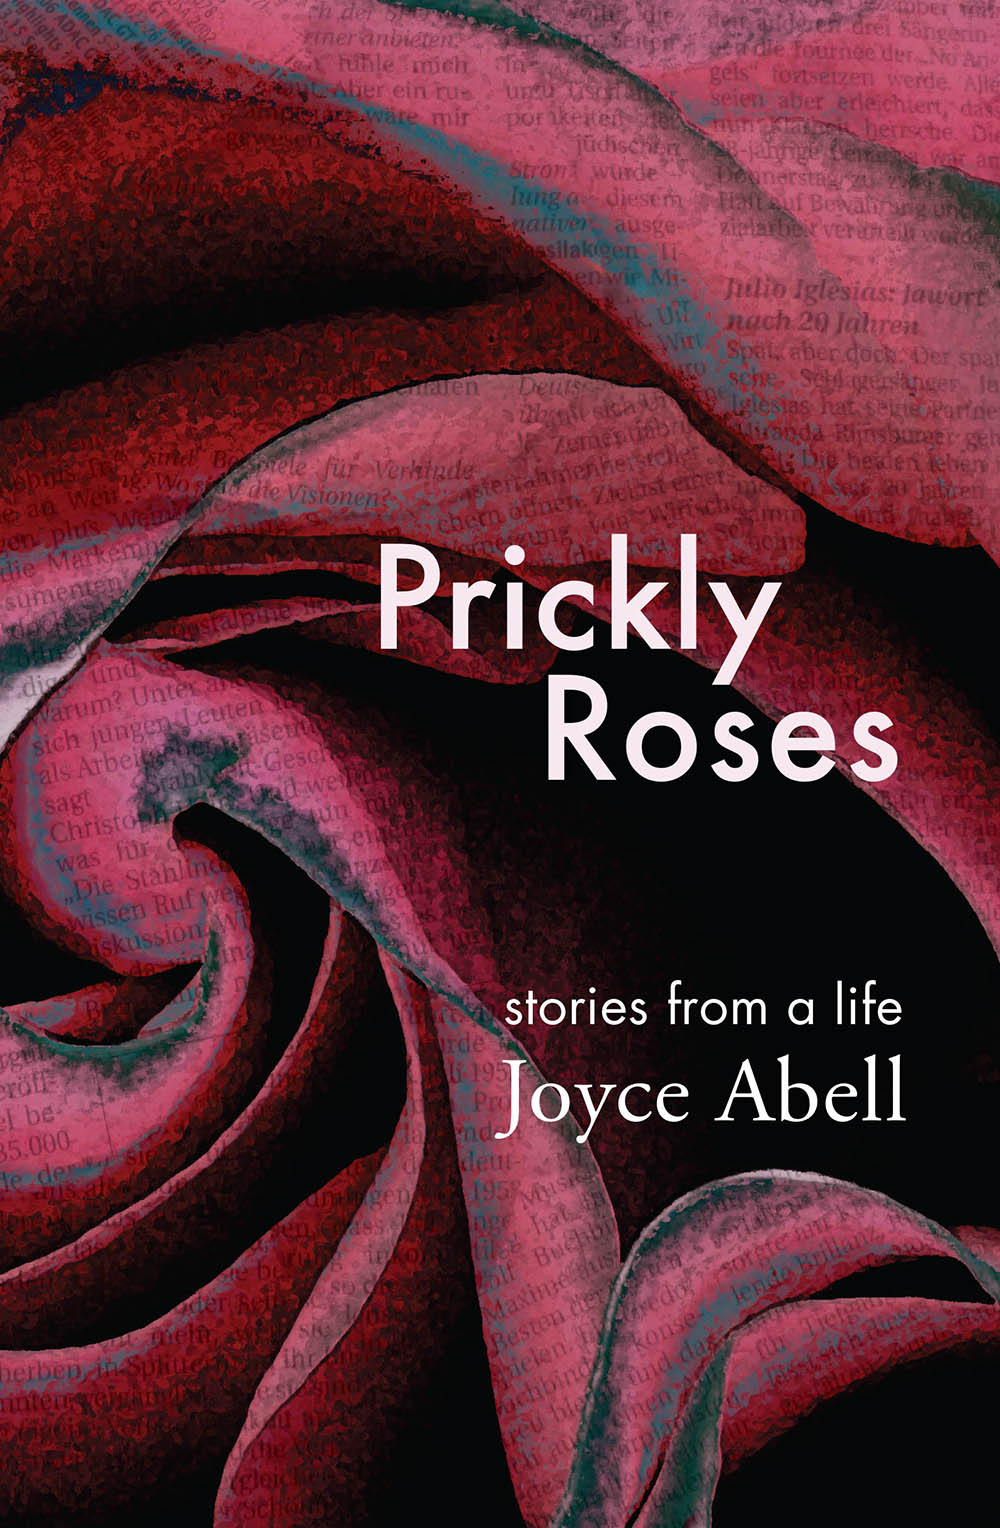 Prickly Roses: Stories from a Life